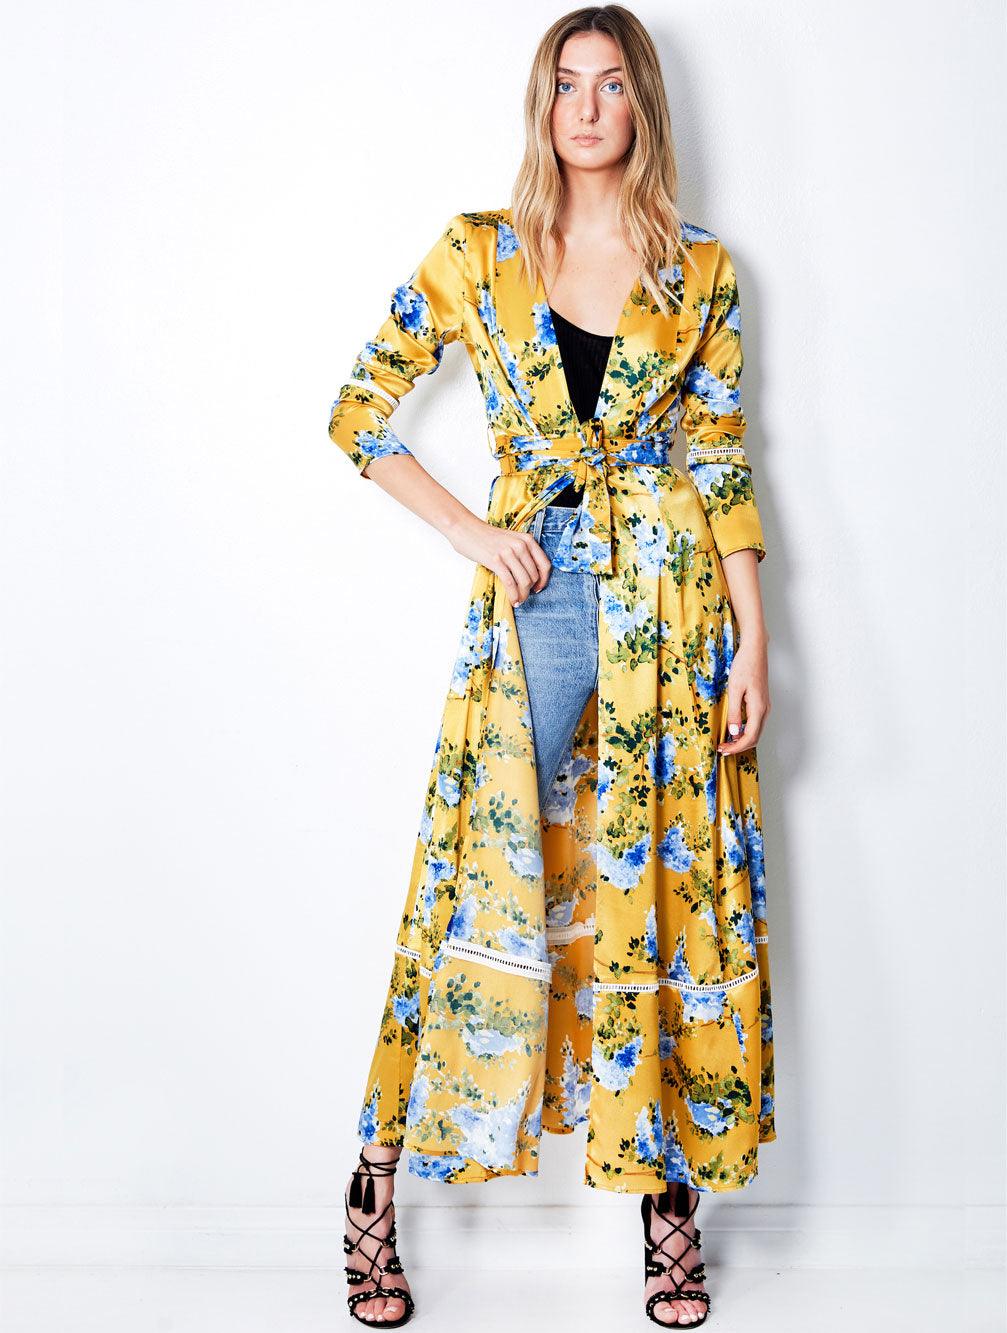 WALL FLOWER MAXI ROBE - Kaia London